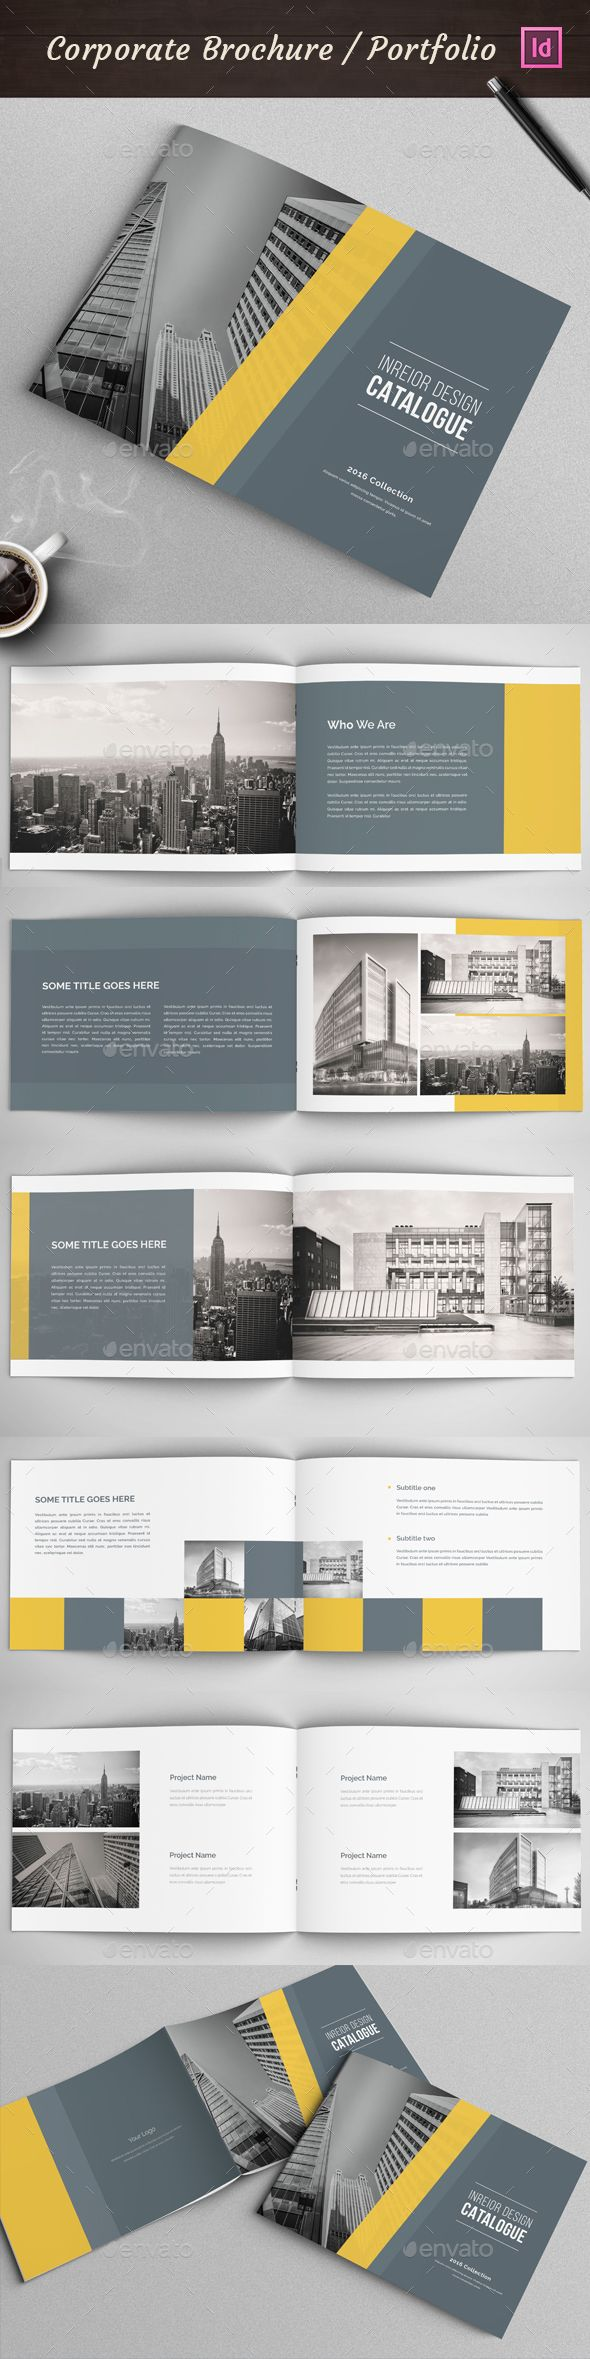 Modern Architecture Brochure Template InDesign INDD. Download here: http://graphicriver.net/item/modern-architecture-brochure/15418057?ref=ksioks